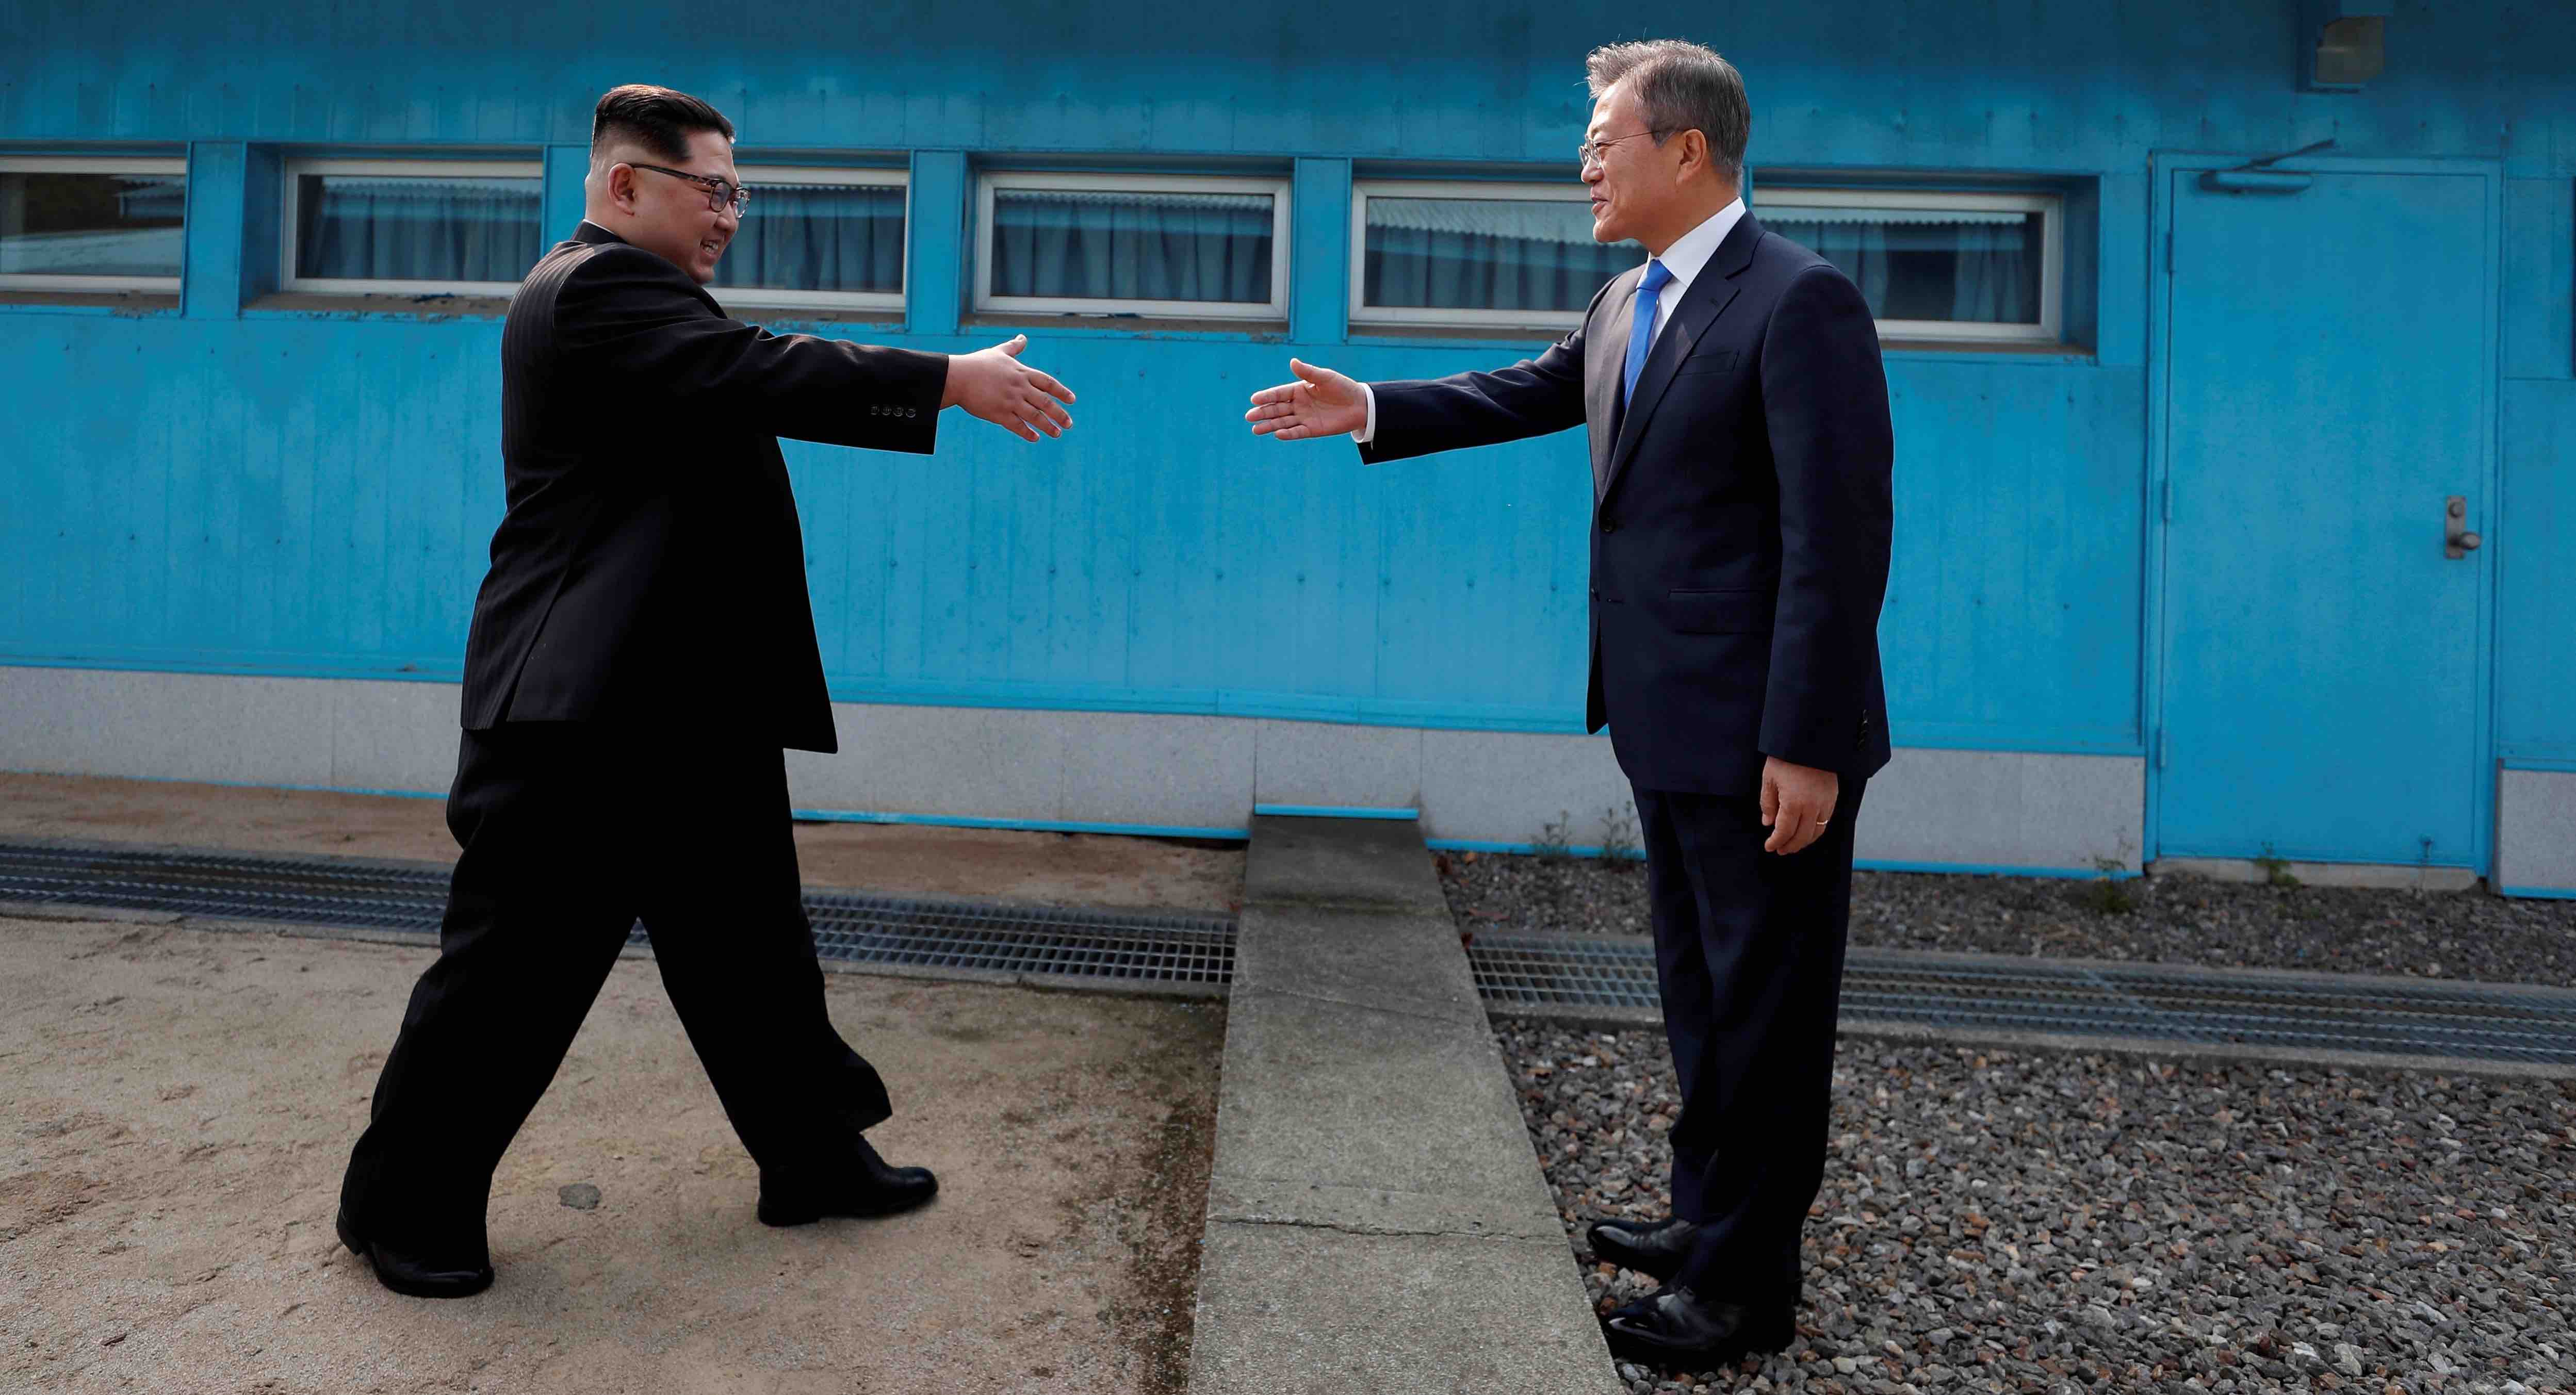 Kim Jong-un and Moon Jae-in meet at the Military Demarcation Line in the truce village of Panmunjom (Photo: Getty Images)